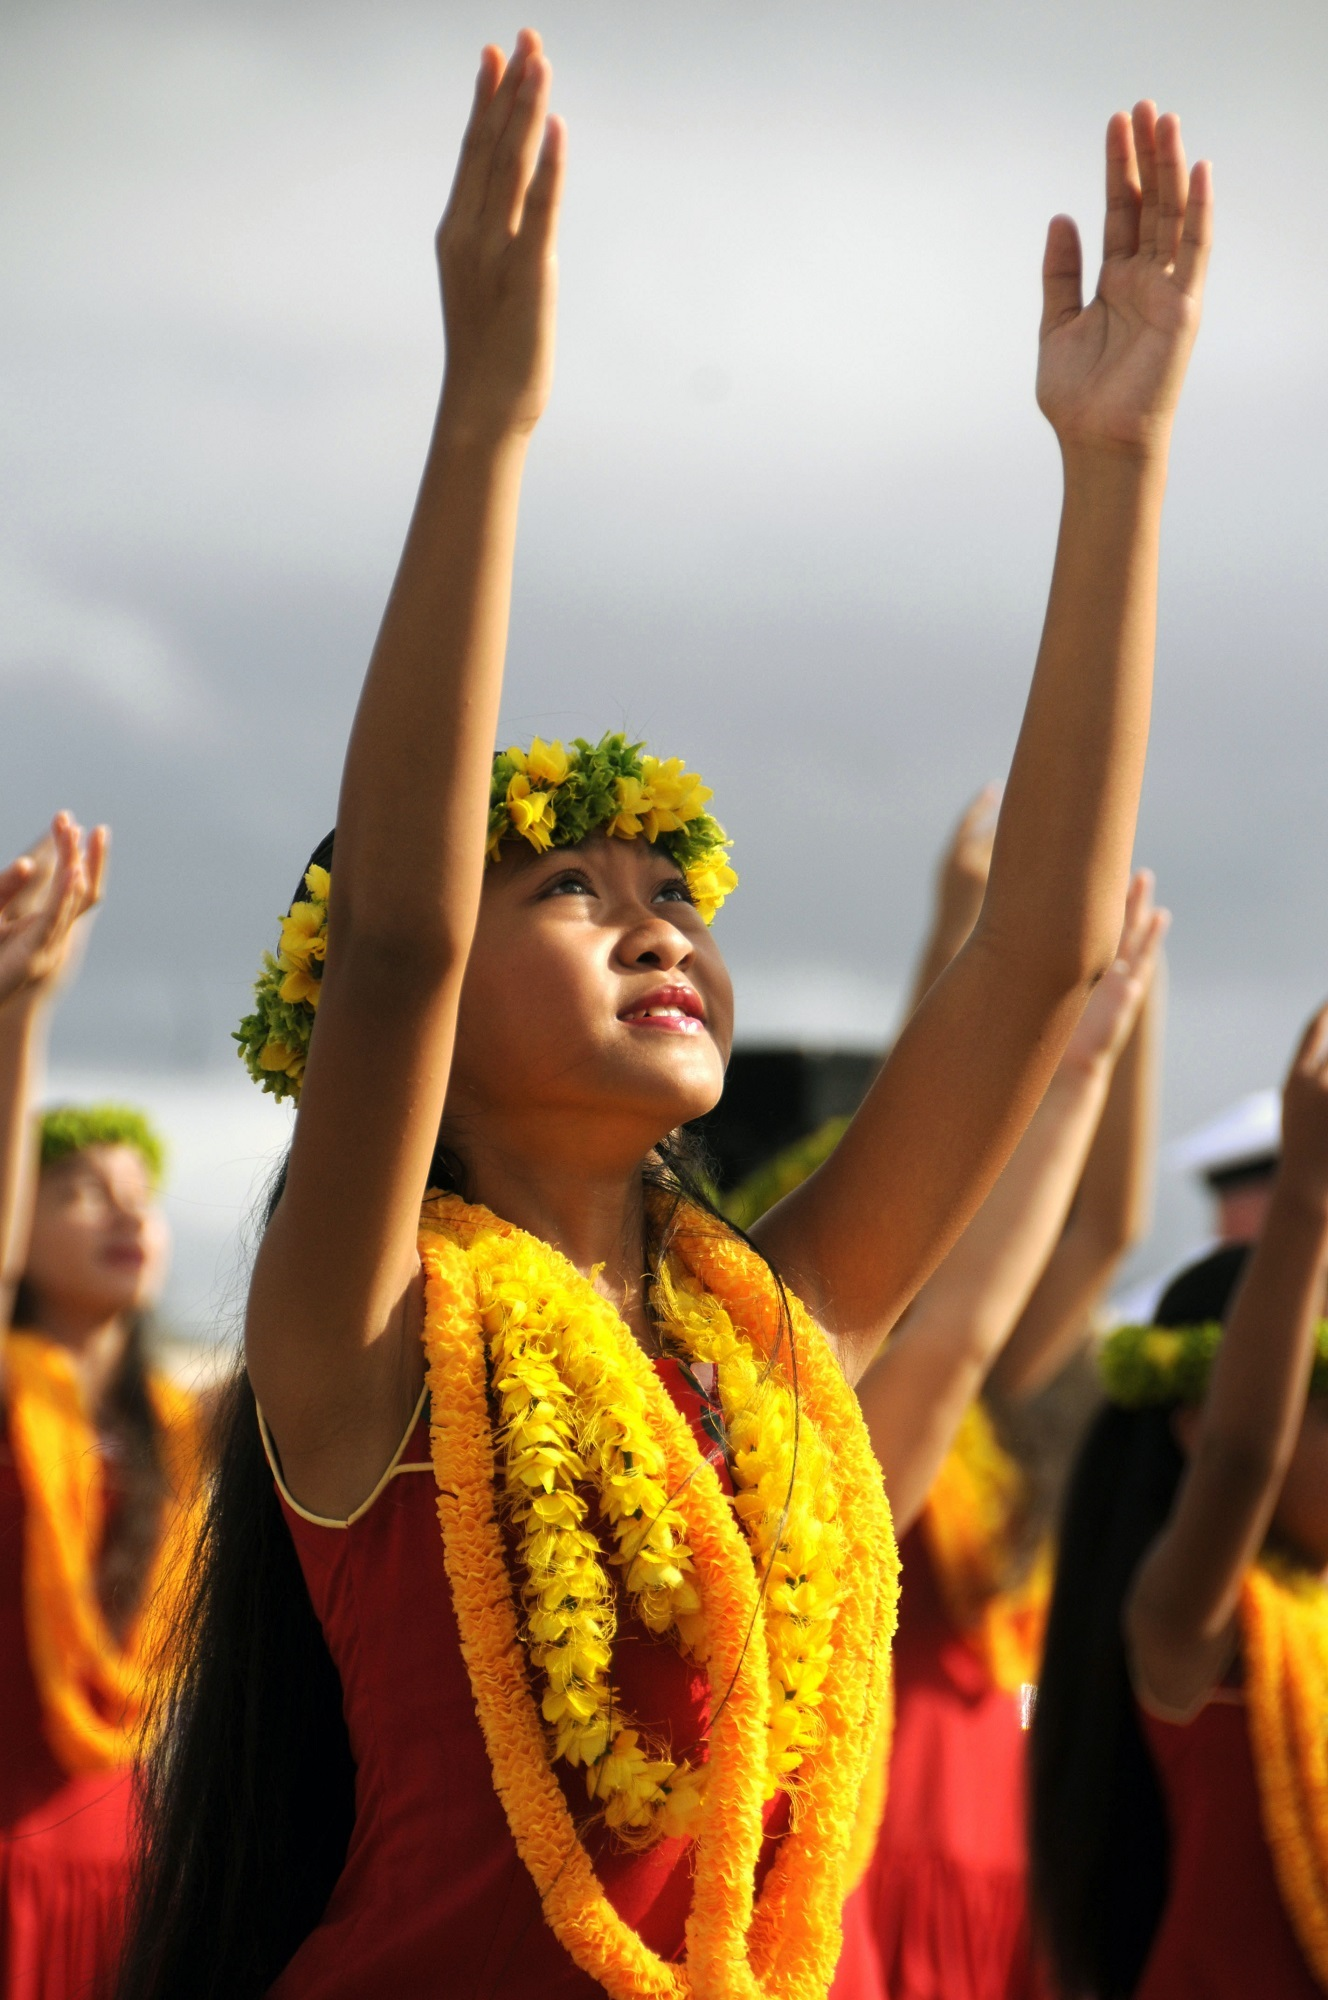 Kauai In May, 2016: Festivals, Events And More